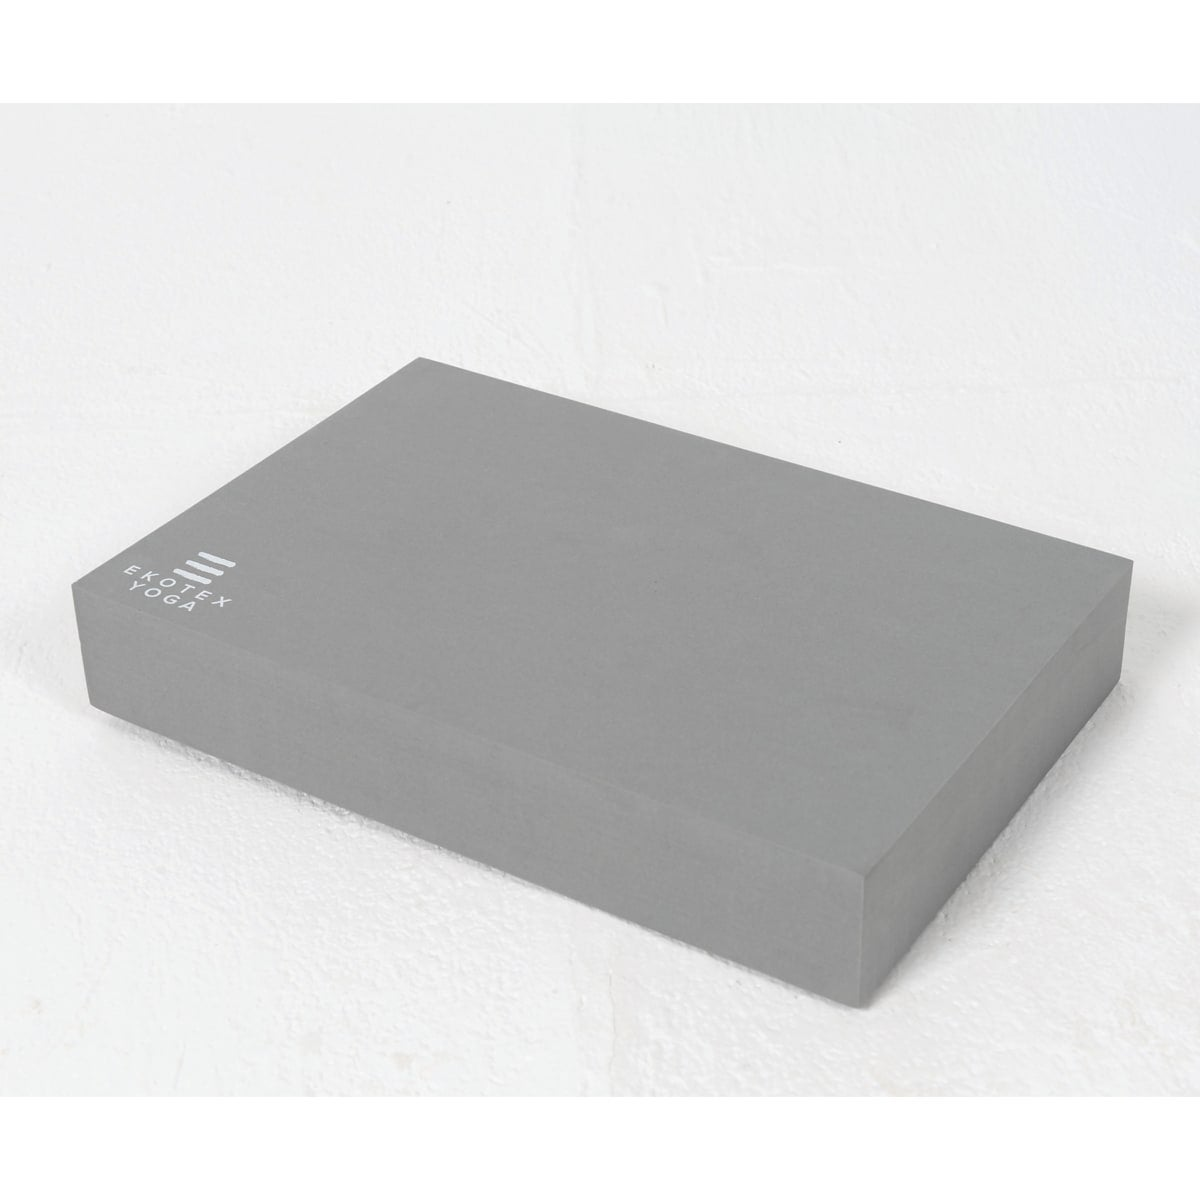 Ekotex Recycled Foam Yoga Block, colour storm grey, made from 60% recycled/reclaimed EVA, high-density and durable, size 30.5 cm x 20.5 cm x 5 cm